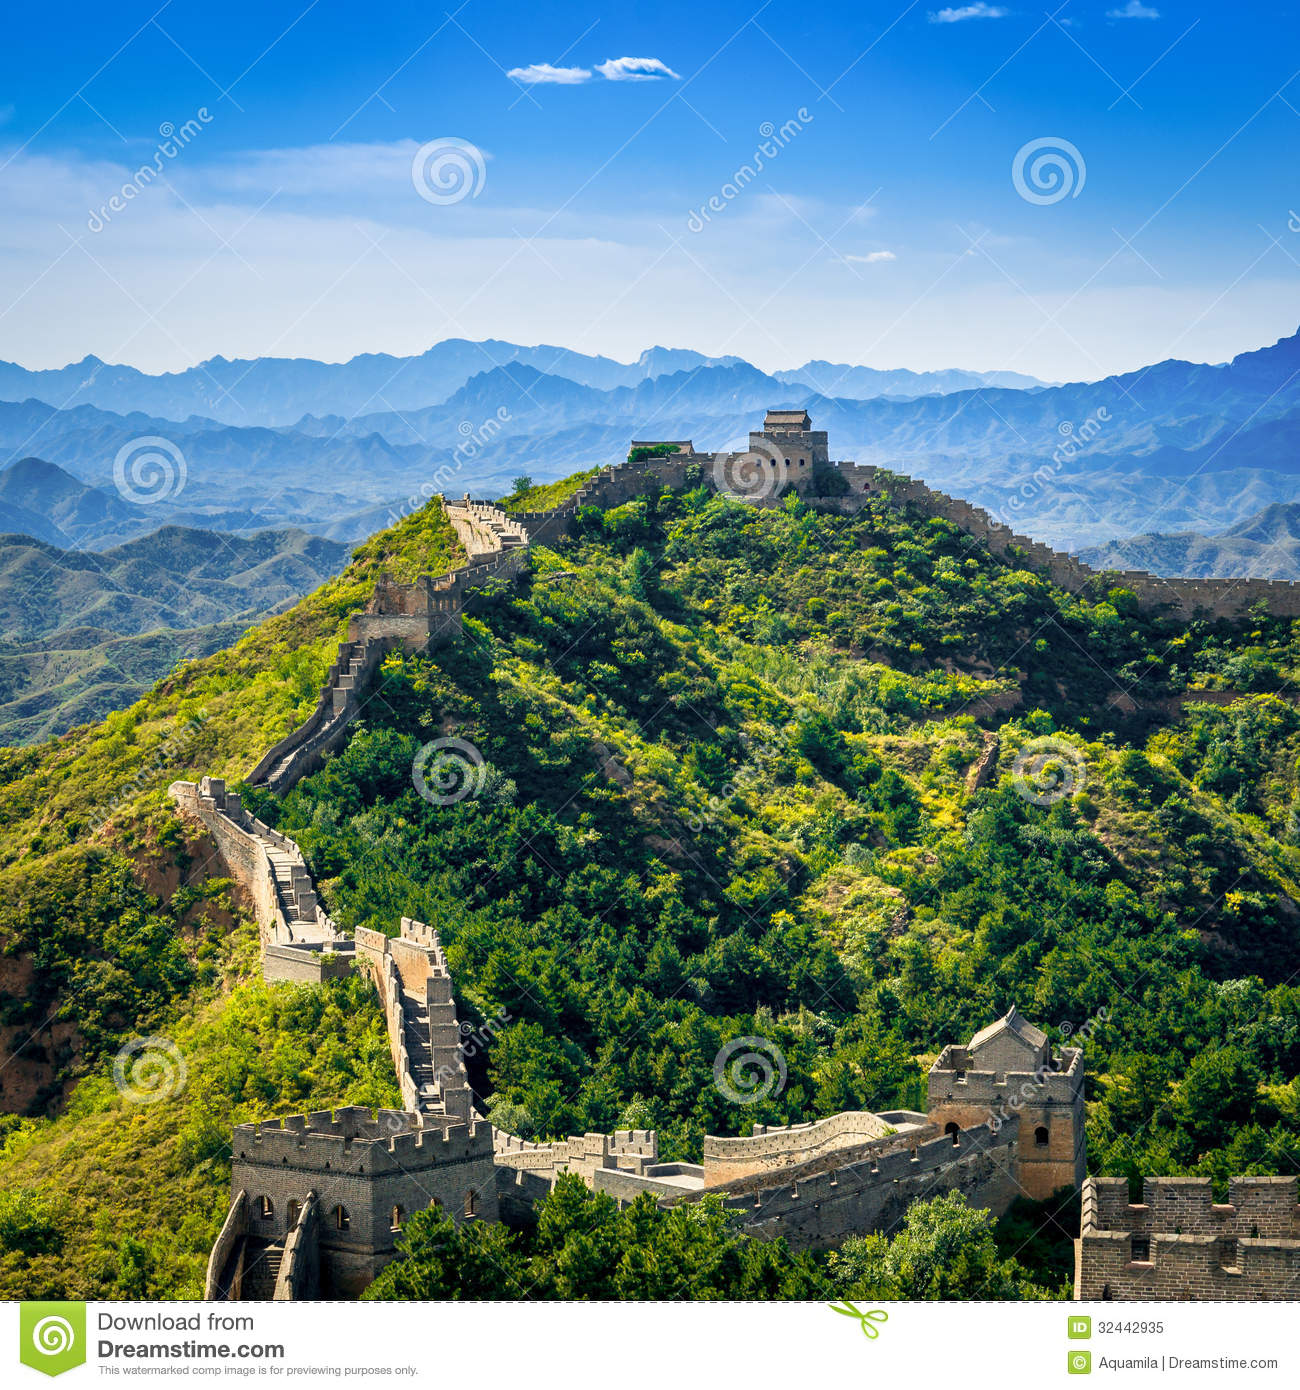 Great Wall of China in summer day, Jinshanling section, Beijing